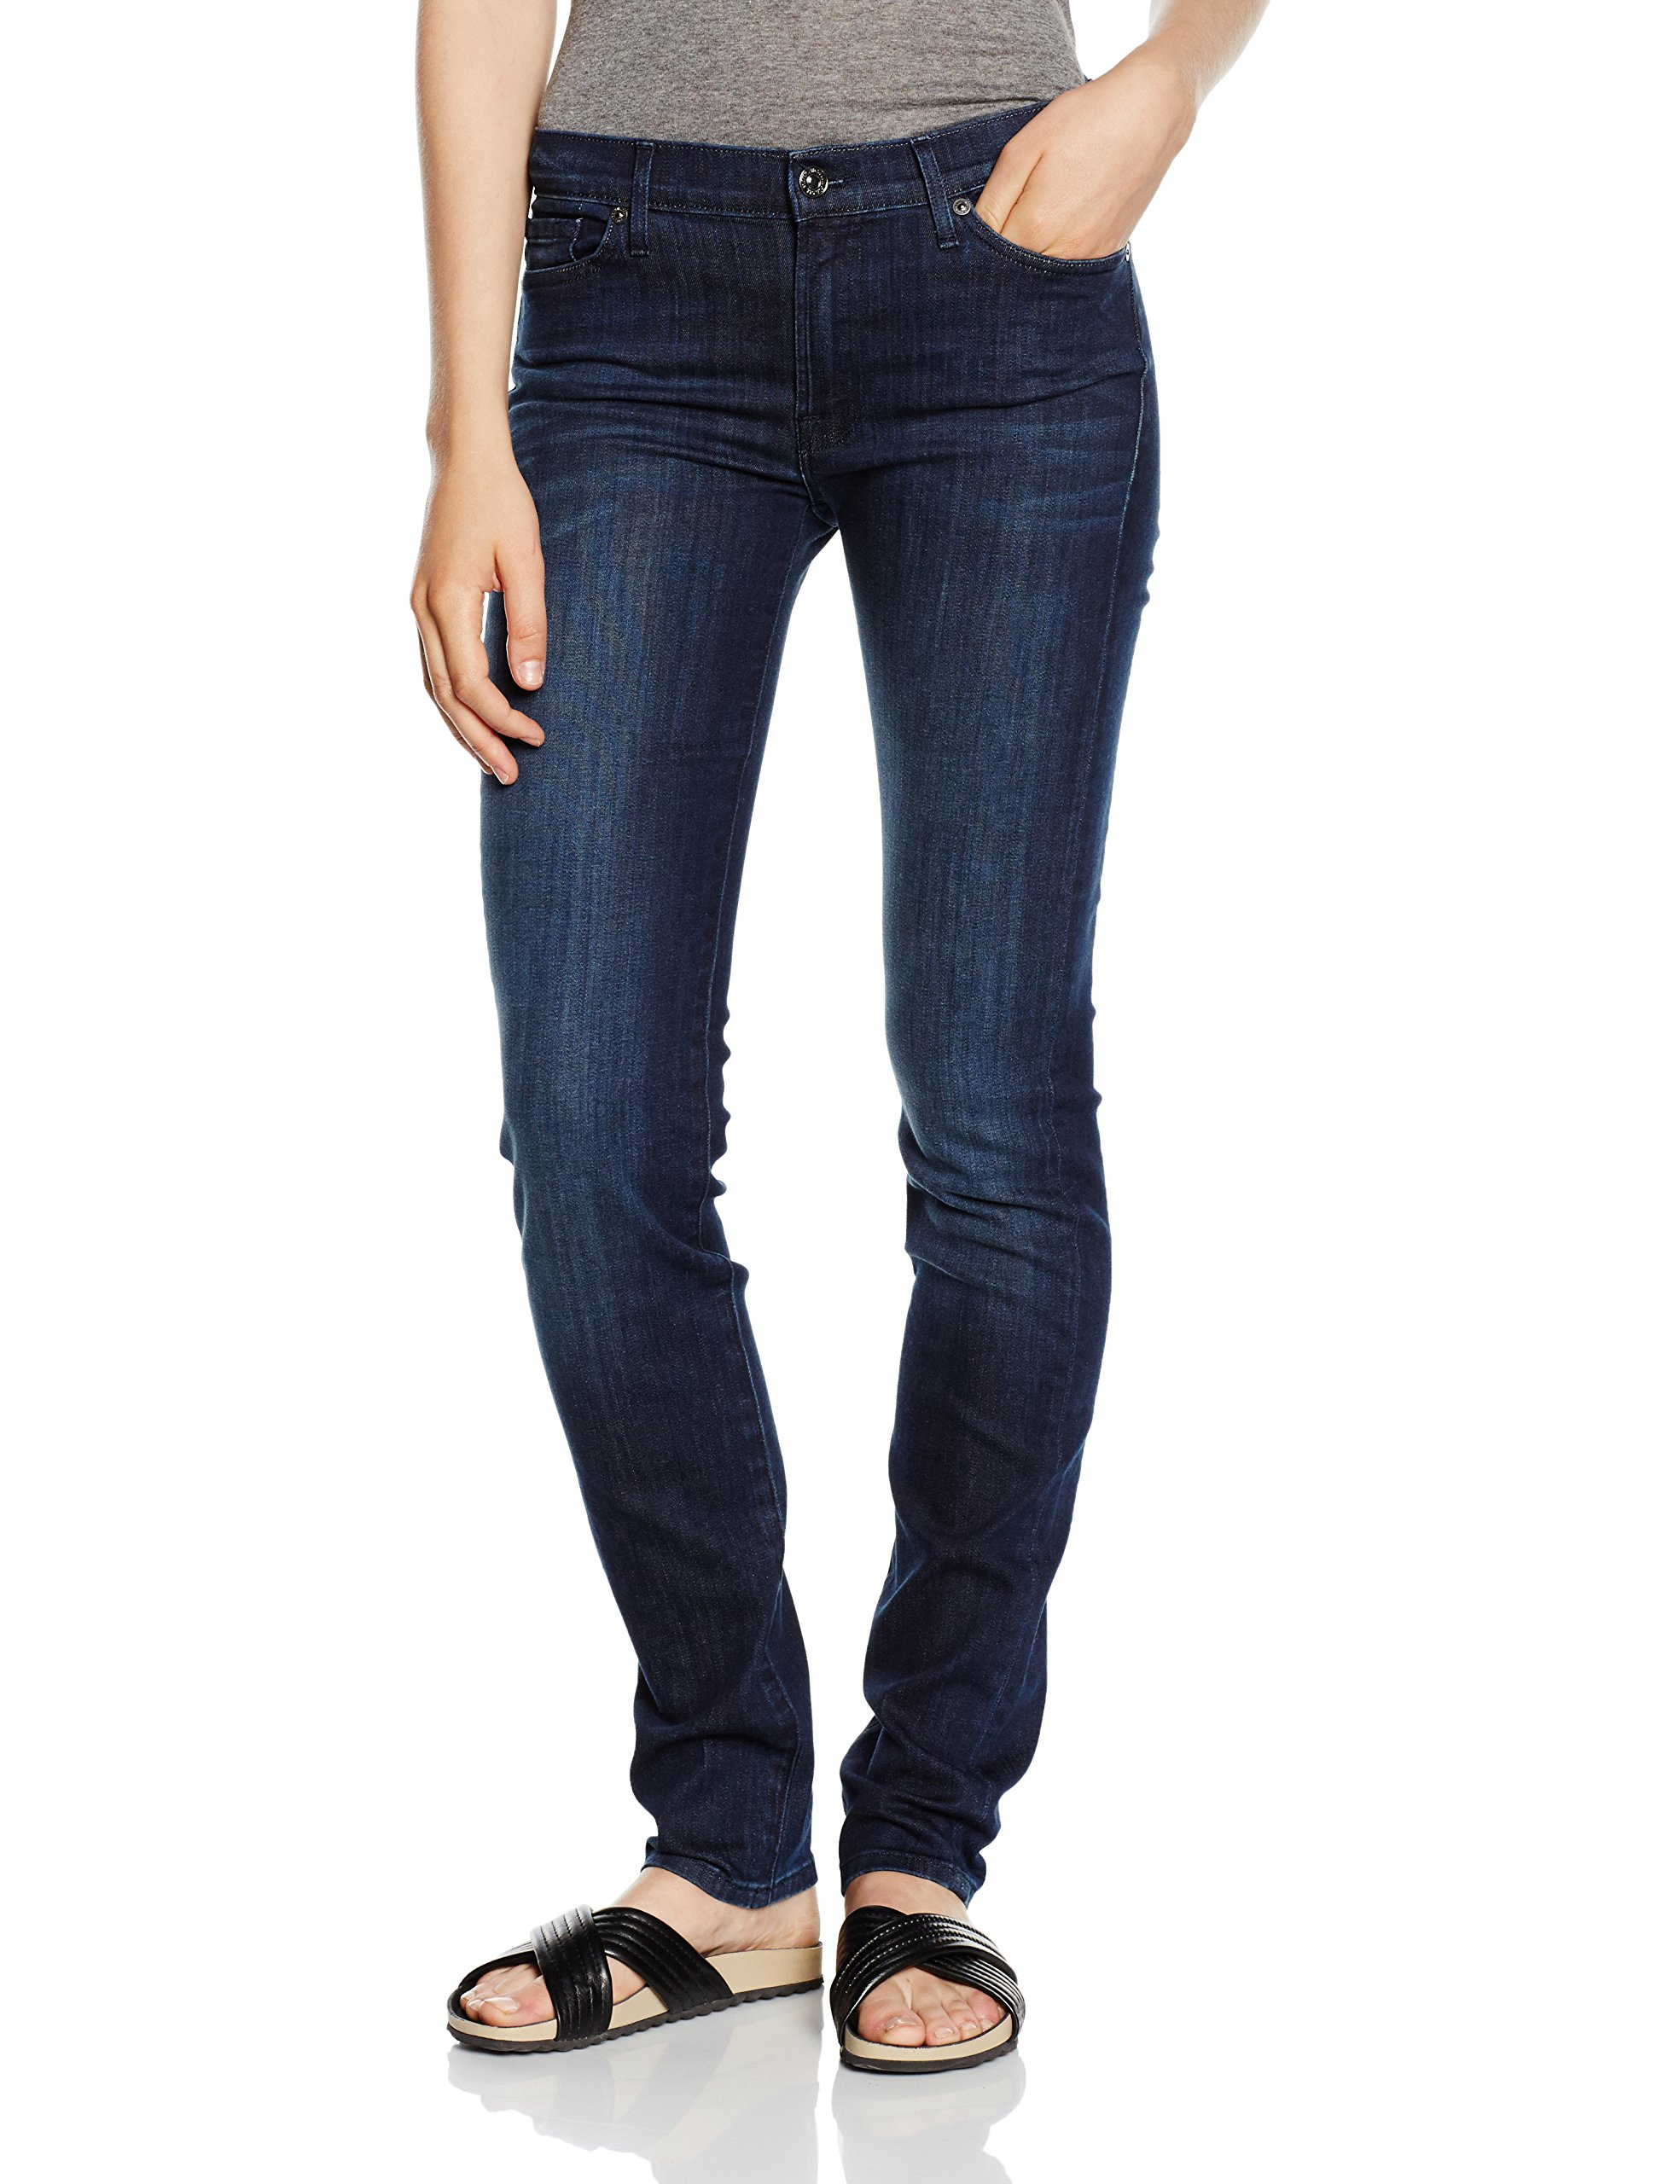 Pour Rozie All Mankind Slim Taille For Femme Jean HauteBleu W26 7 Coupe 6b7Yyvfg